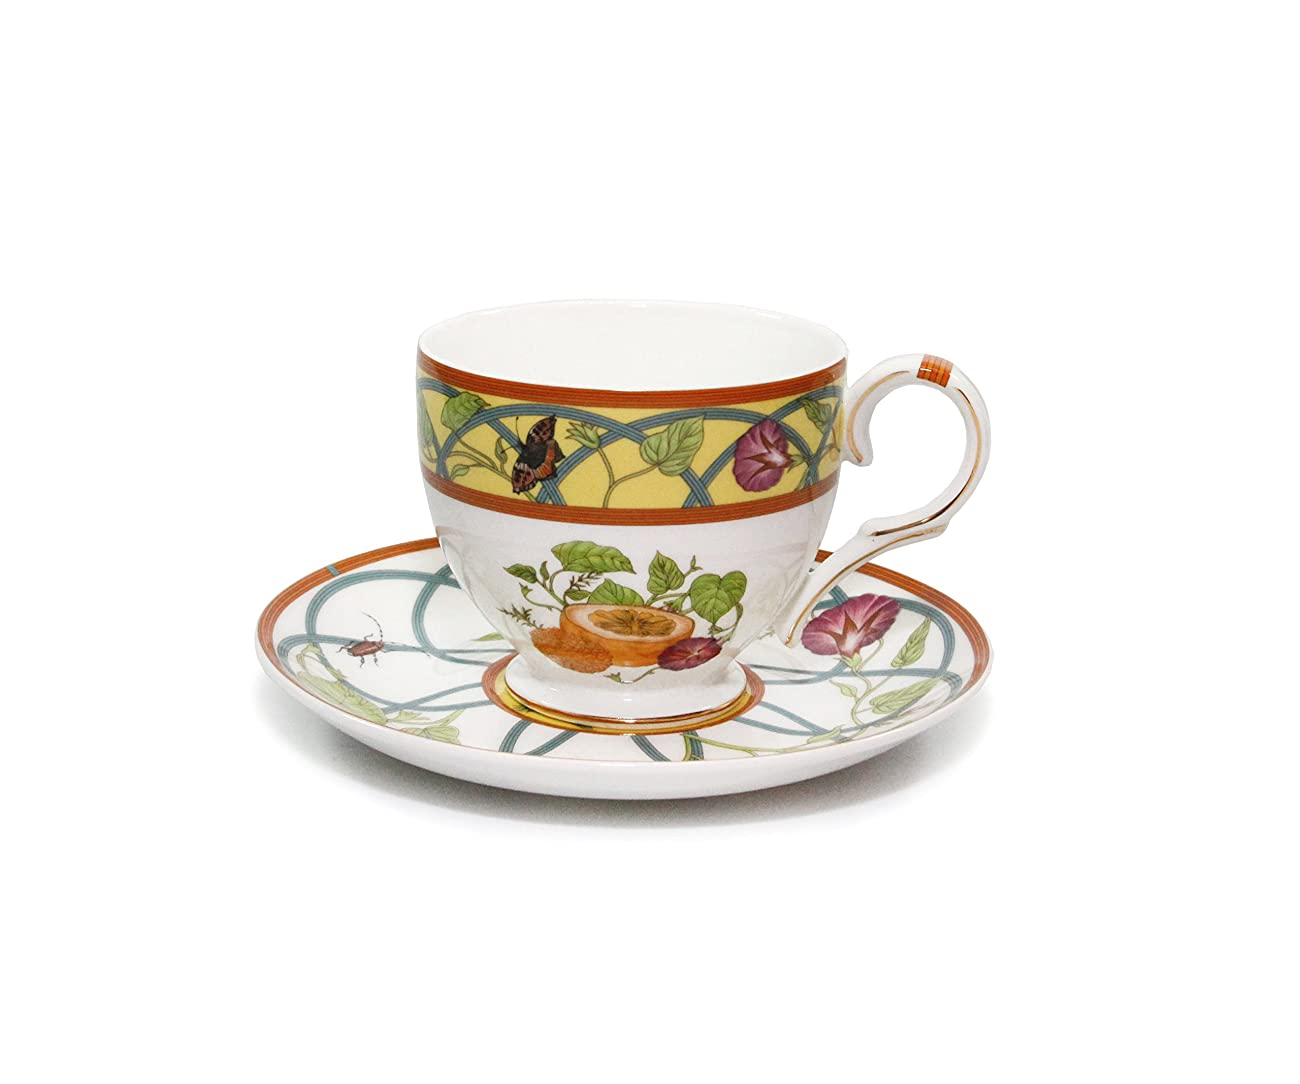 Royal Porcelain 15-Piece Antique Citrus Yellow Vintage Dining Tea Cup Set, Service for 6, Handmade & Hand-Painted, HQ Bone China 1